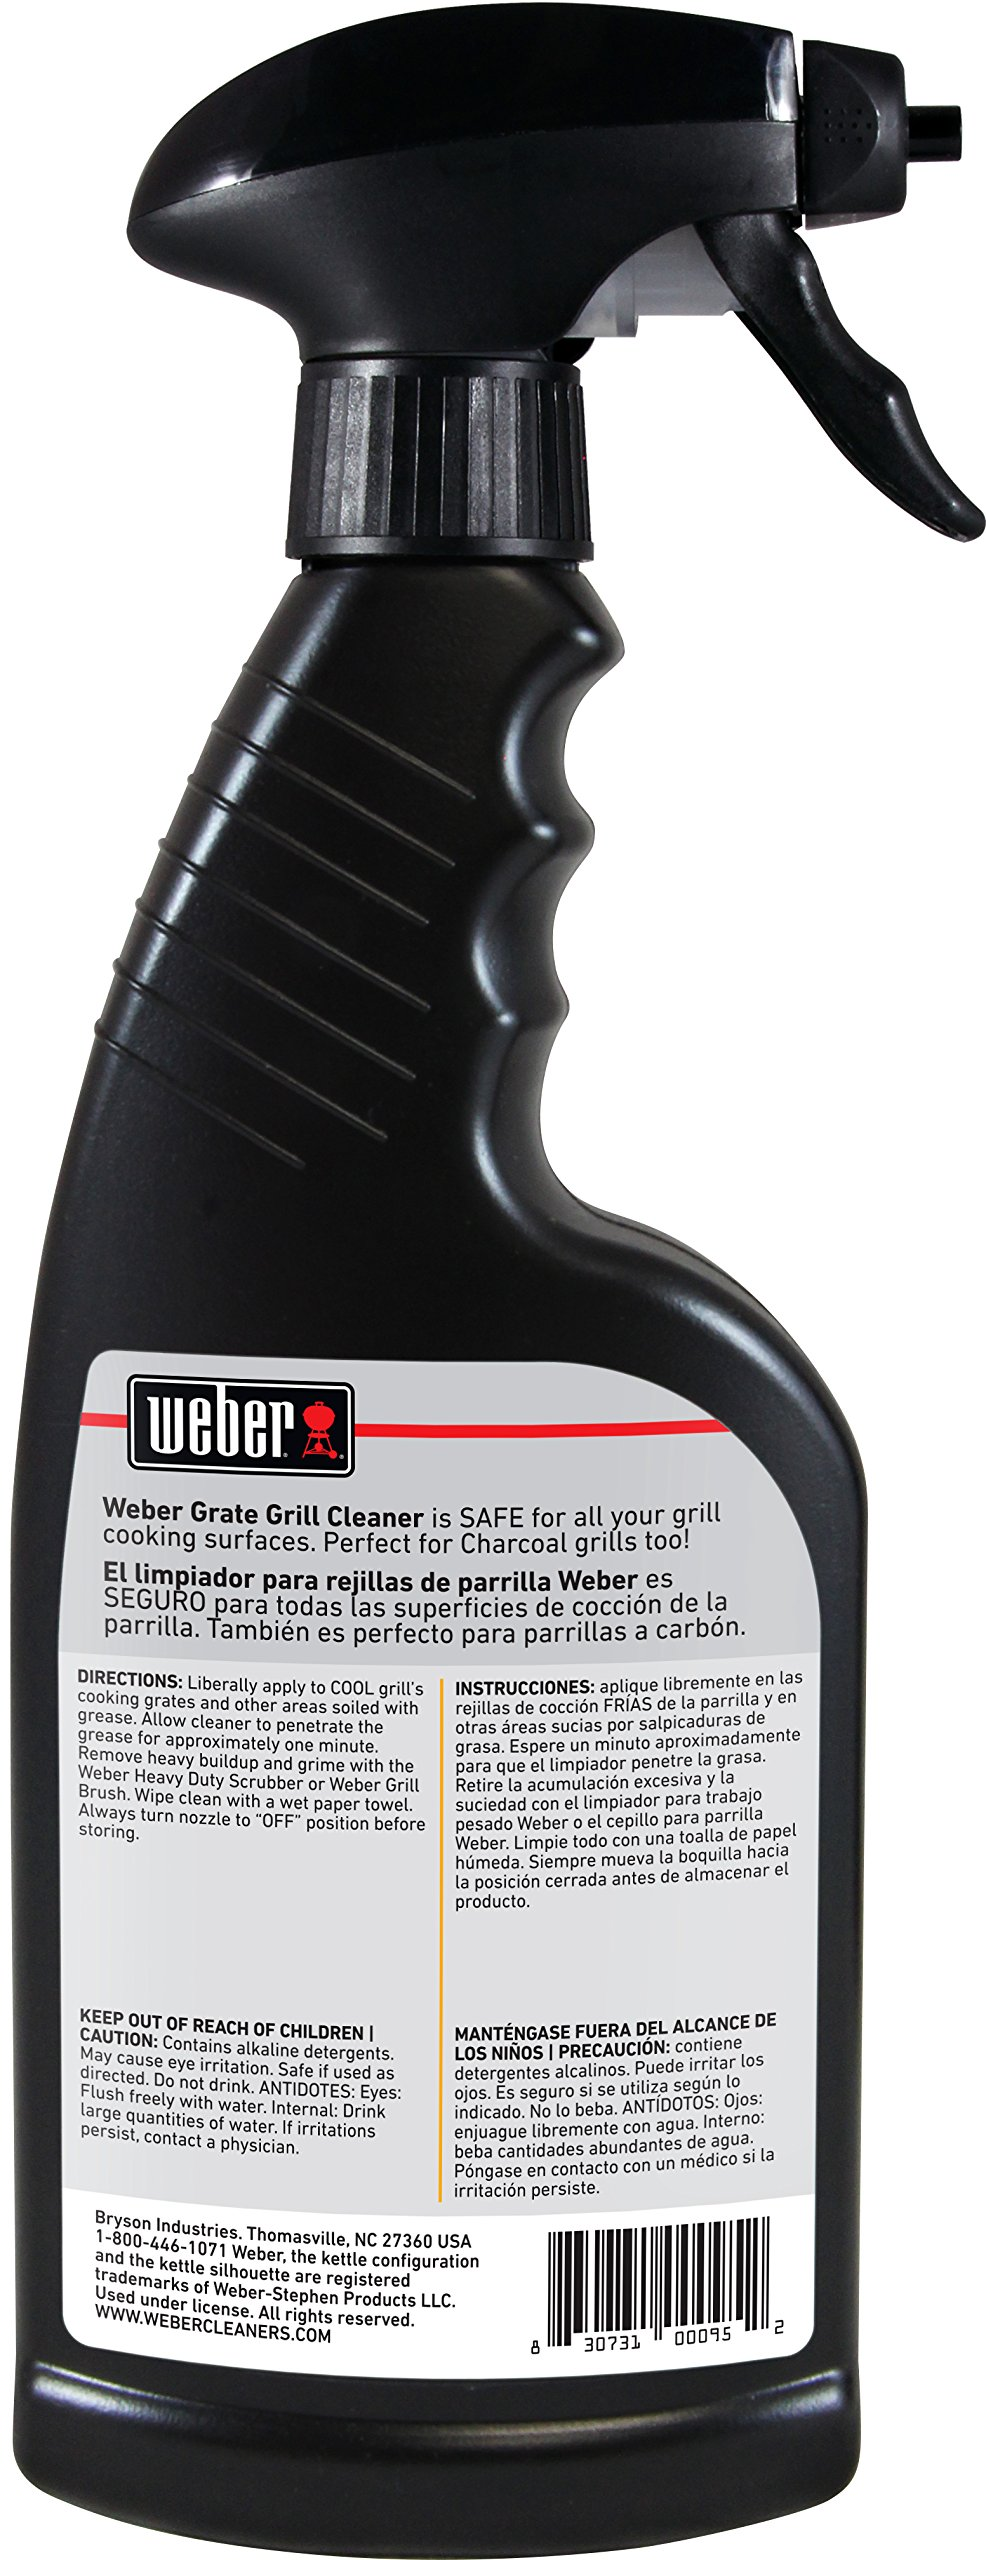 Grill Cleaner Spray - Professional Strength Degreaser - Non Toxic 16 oz Cleanser By Weber Cleaners by Weber